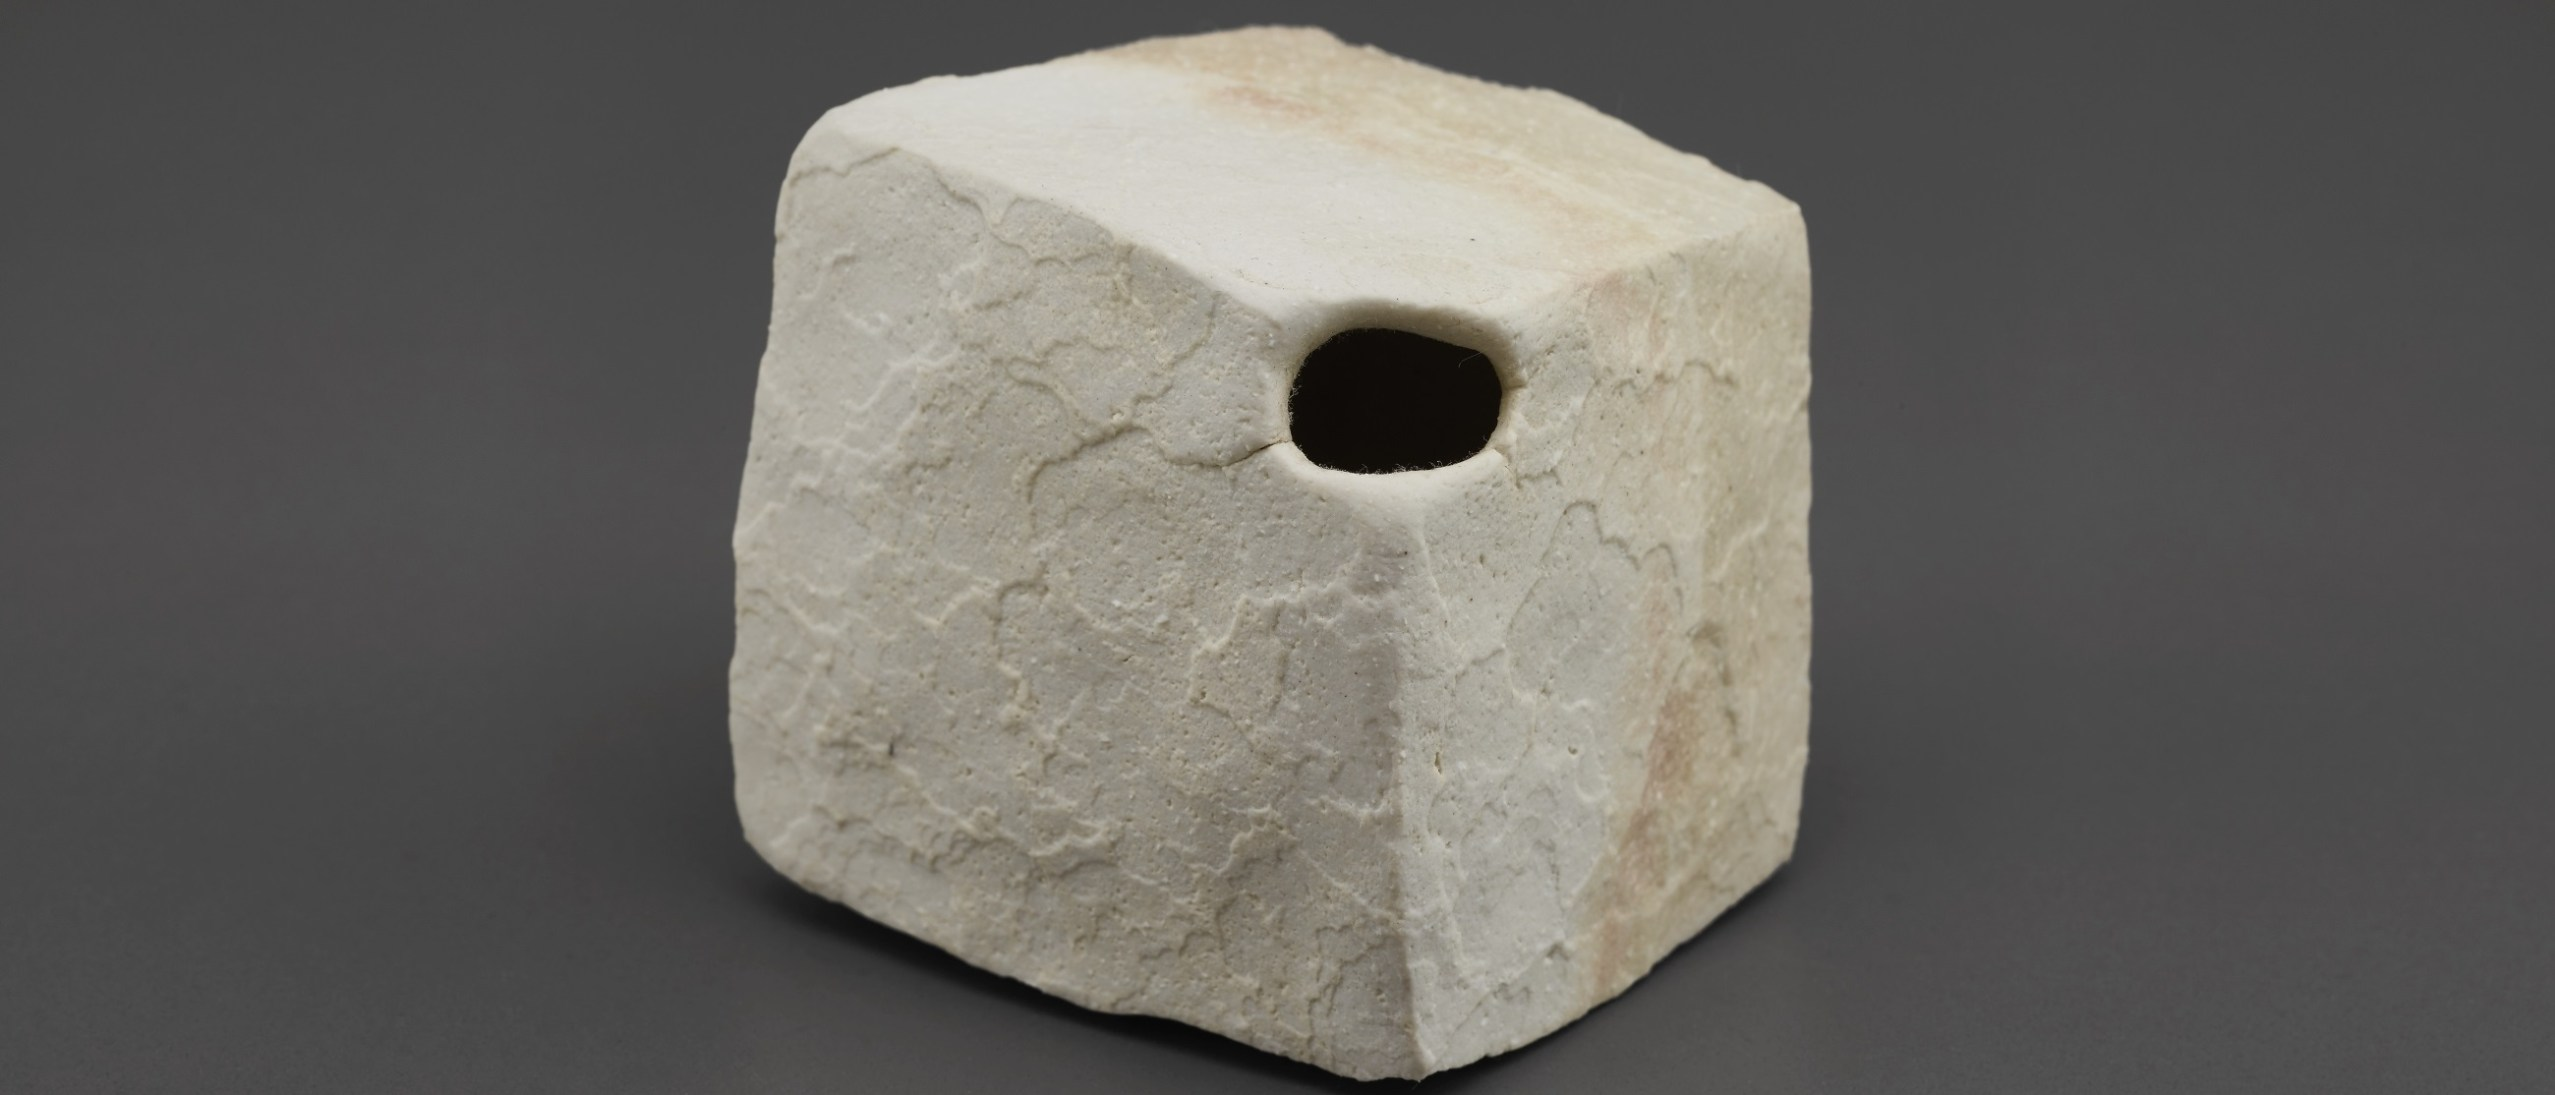 Photo of Cube; Akiyama Yō (b. 1953); Japan, Kyoto, 2011; Porcelain with surface altered by burner and hammer; Gift of Halsey and Alice North; Arthur M. Sackler Gallery S2017.19